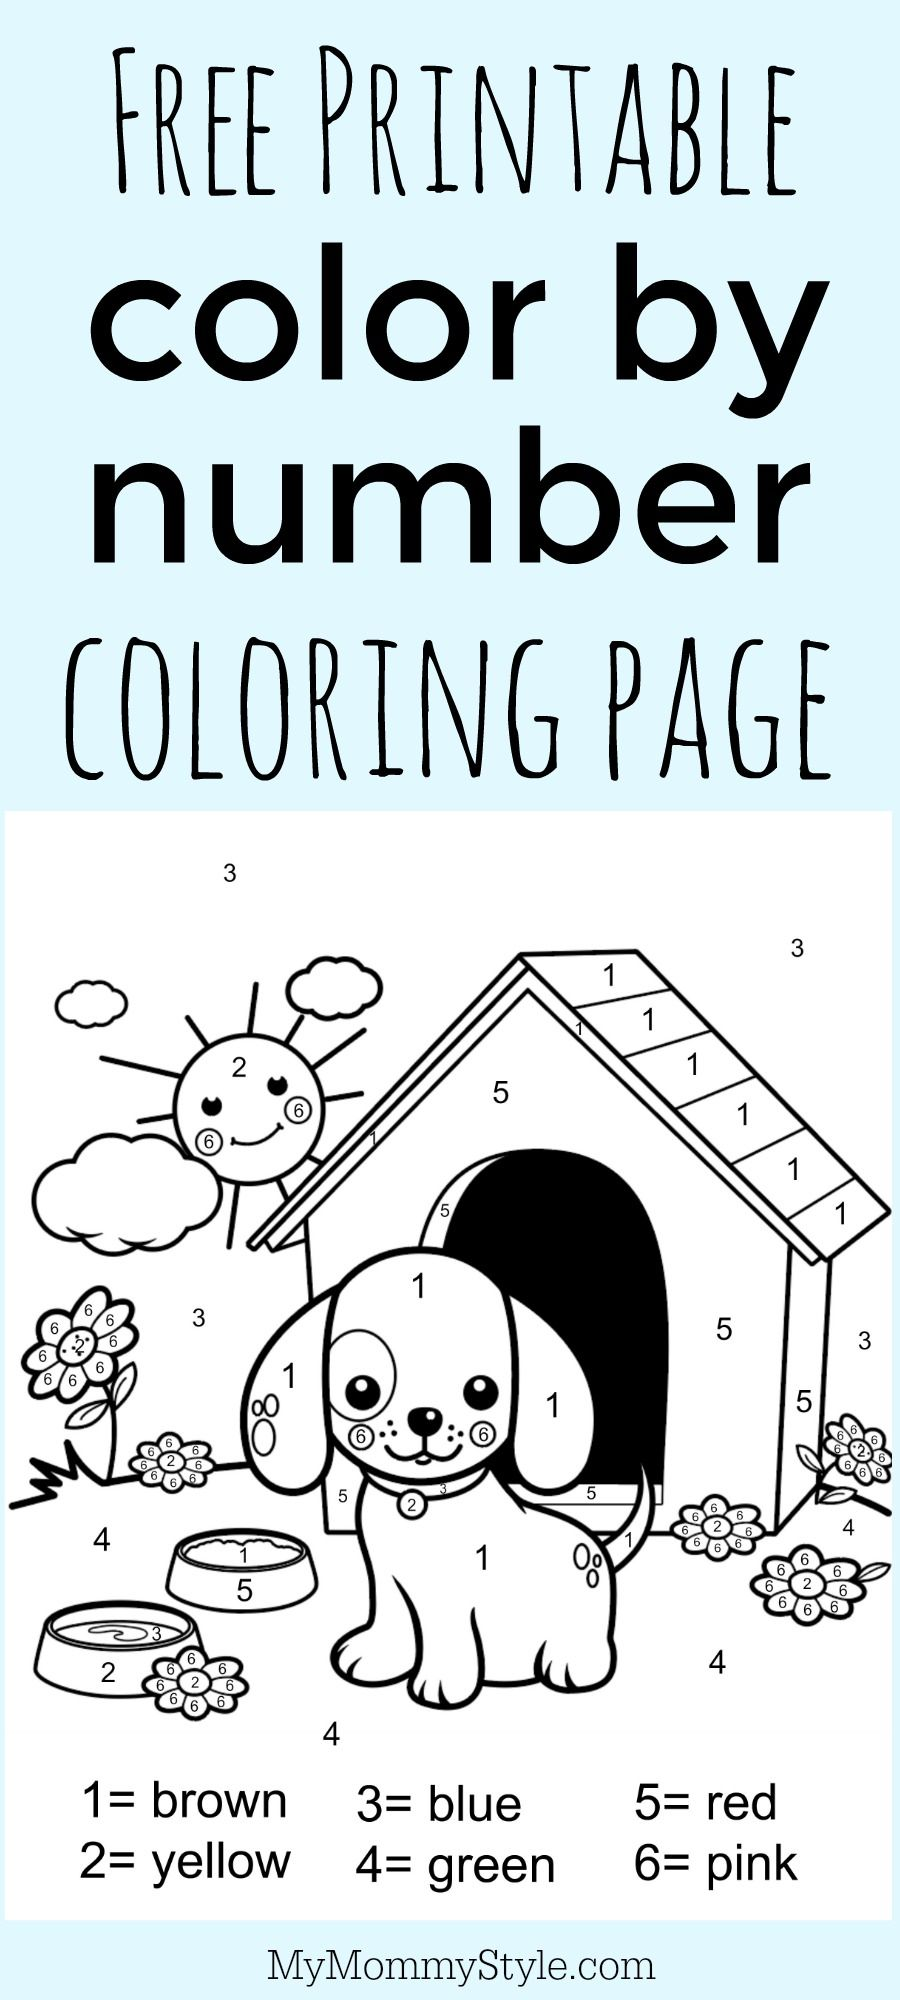 Color by number coloring page free printable | Preschool ... | number coloring pages for kindergarten